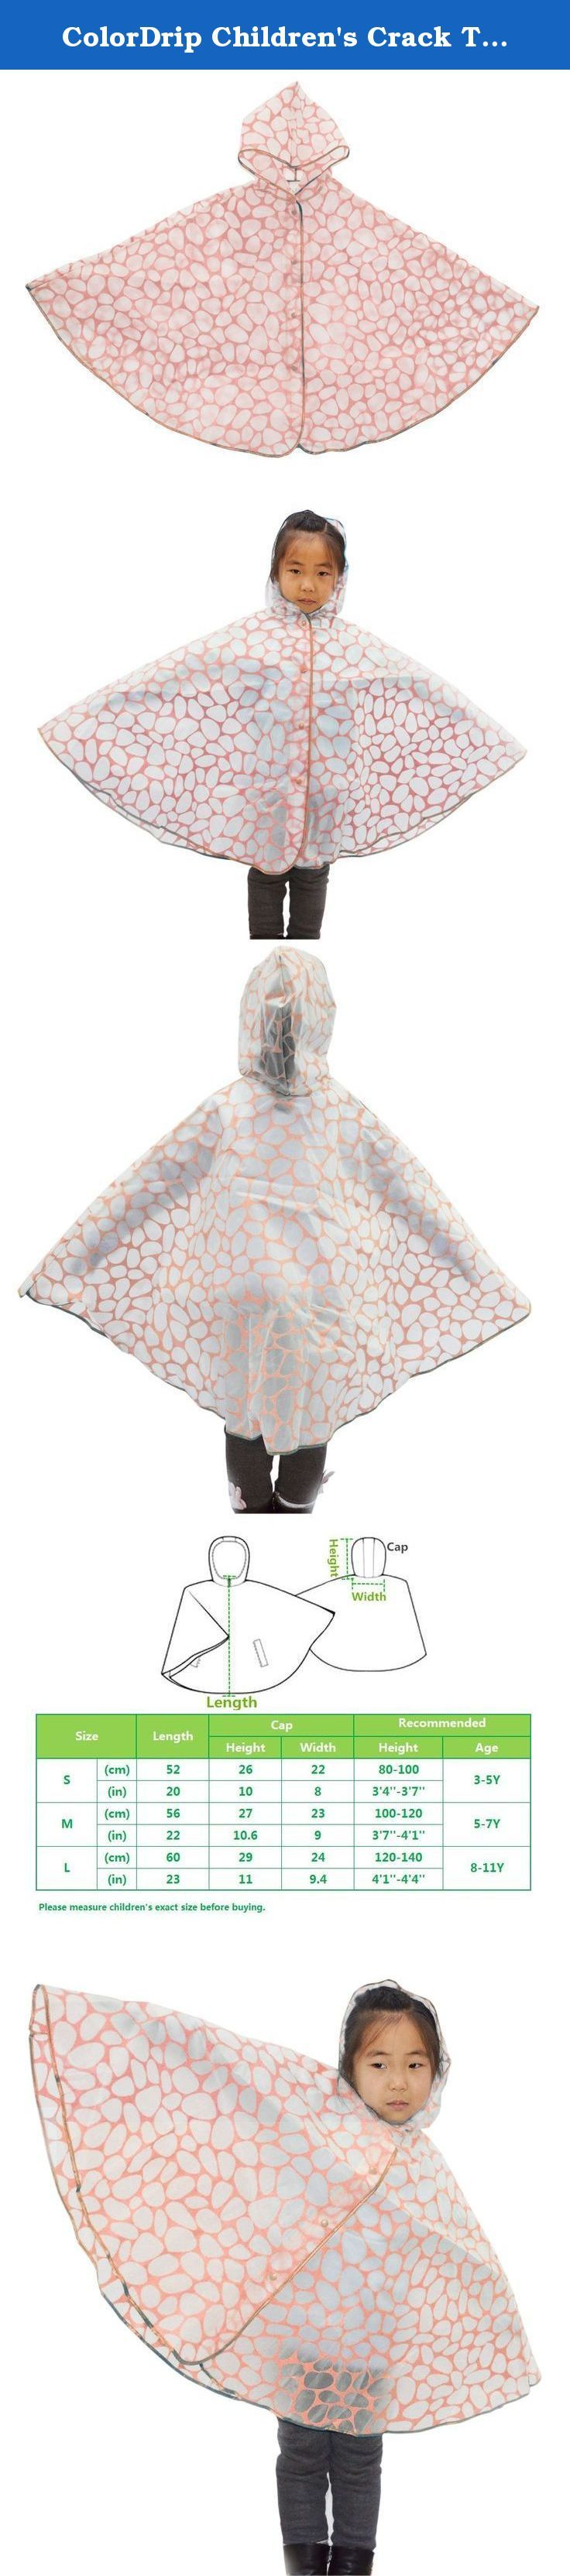 ColorDrip Children's Crack TPU Children Rain Poncho Medium Pink. *Made of special TPU, all-around heartfelt protection for your lovely sweetie; Eco-friendly and soft materials without harmful substance---absolutely skin-friendly and healthy; Excellent waterproof and free breathability---prevention from wetting in the rain comfortably; Low temperature-resistant and anti-tearing---windproof and durable even in the chilly winter; Light and crease-resistant---easy for outdoor carrying or…